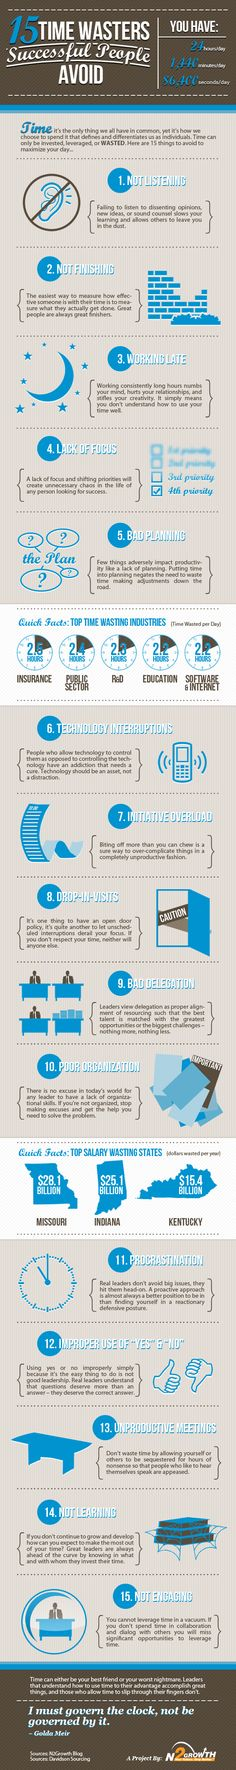 Infographic: 15 Time Wasters by N2Growth: http://www.n2growth.com/blog/15-time-wasters-infographic/